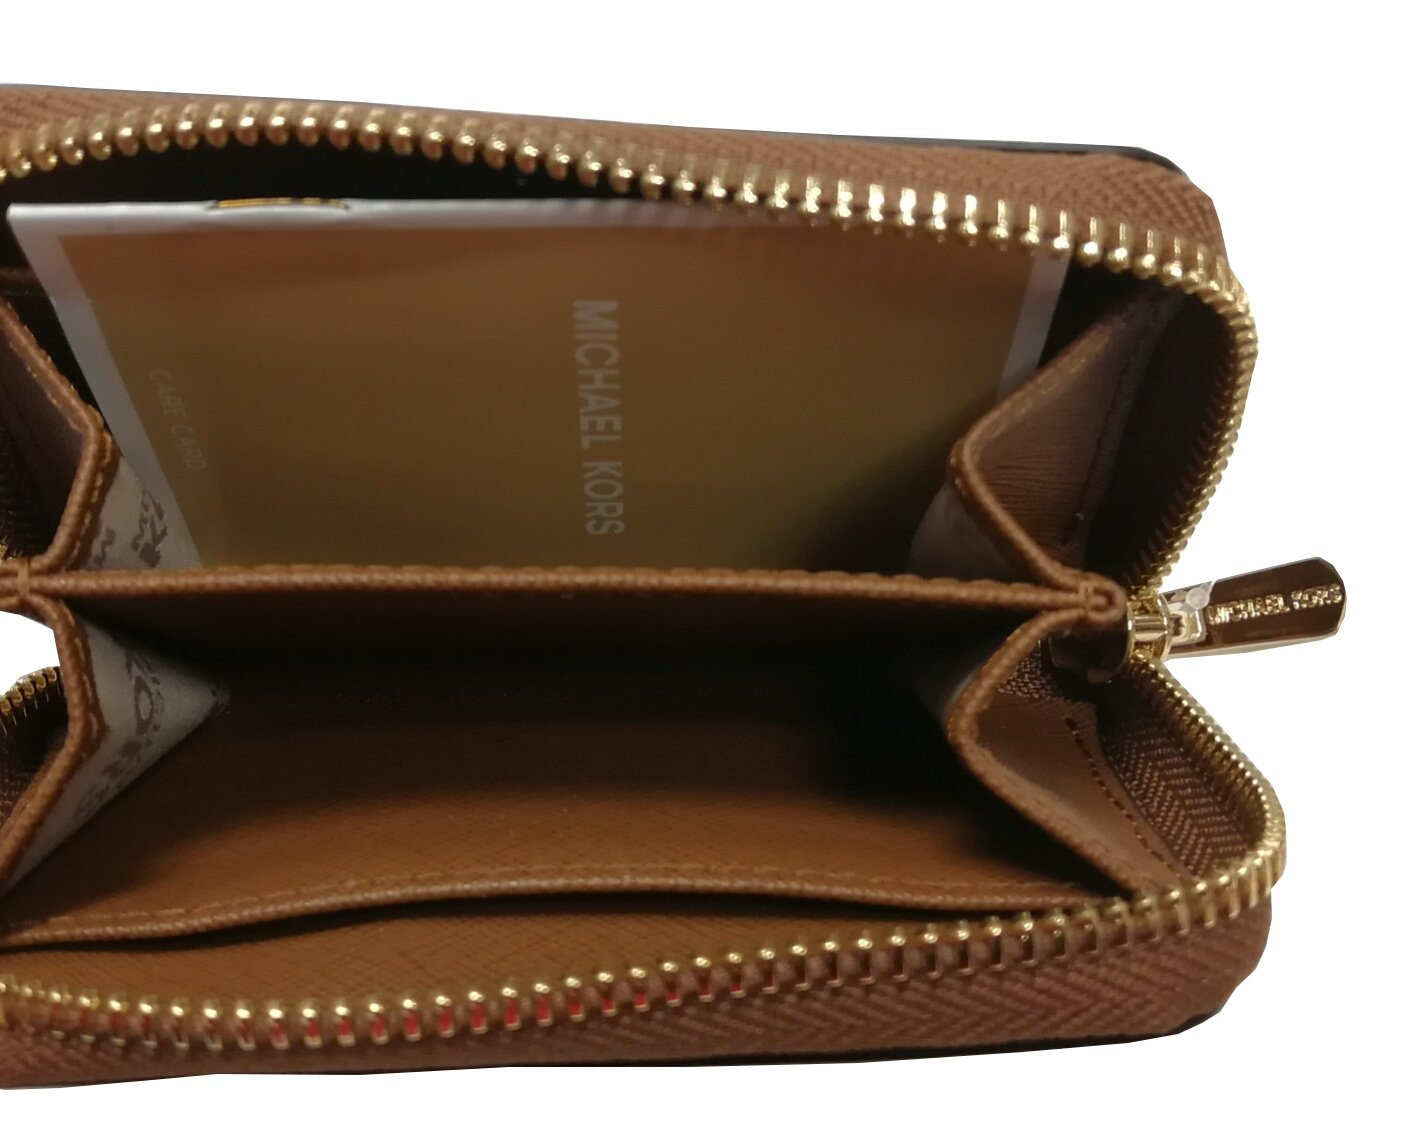 Michael Kors Jet Set Travel Zip Around Coin Case Leather Wallet Luggage by Michael Kors (Image #4)